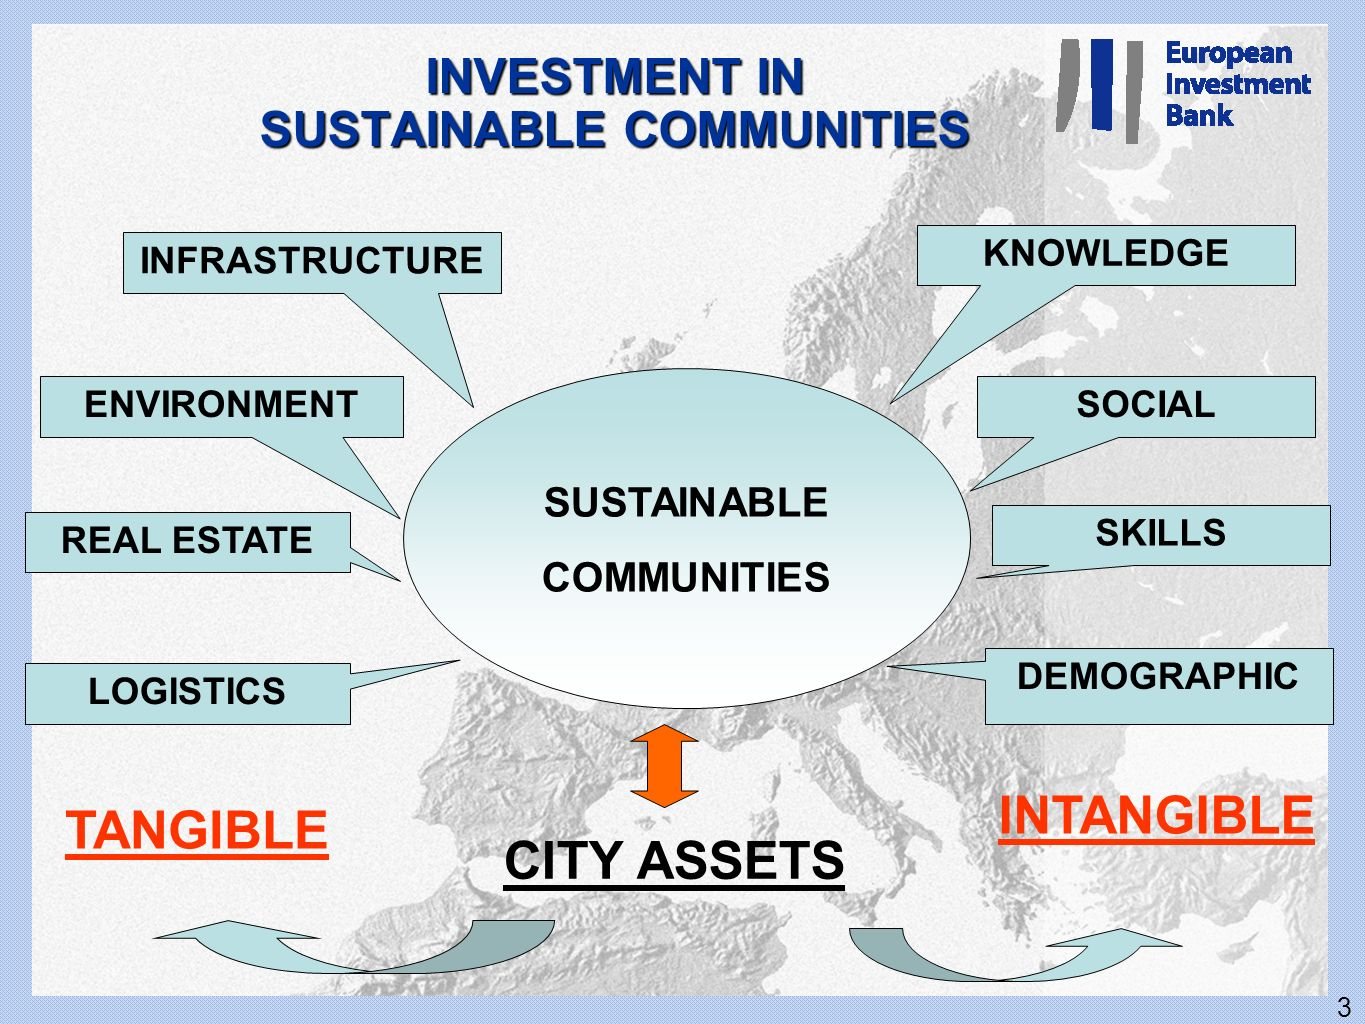 3 INVESTMENT IN SUSTAINABLE COMMUNITIES SUSTAINABLE COMMUNITIES INFRASTRUCTURE KNOWLEDGE ENVIRONMENT REAL ESTATE LOGISTICS TANGIBLE INTANGIBLE DEMOGRA